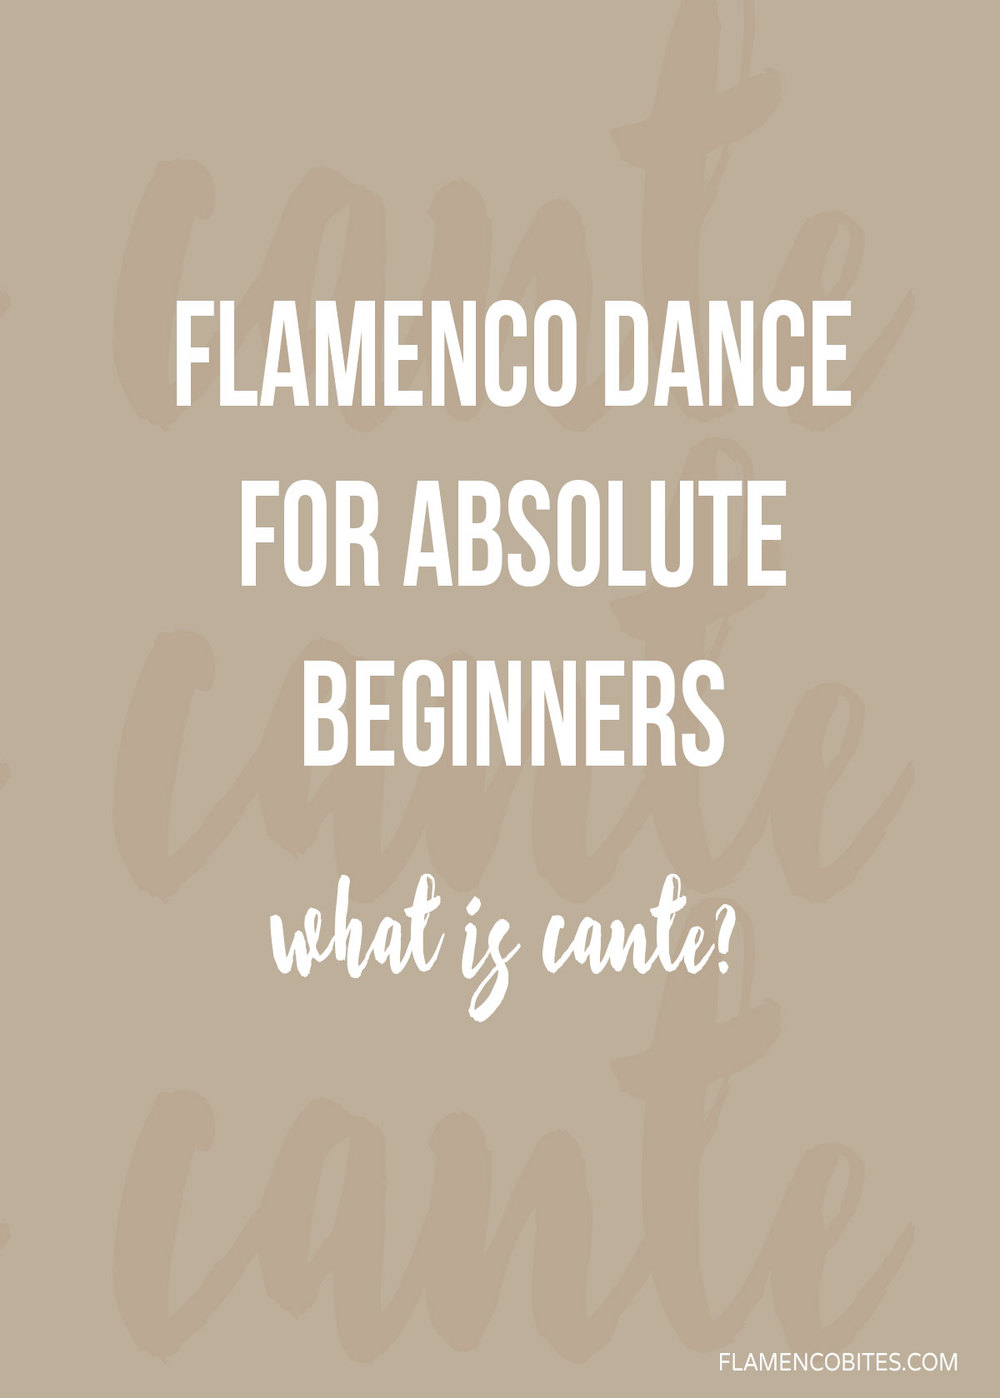 Flamenco music - what is cante? | www.flamencobites.com